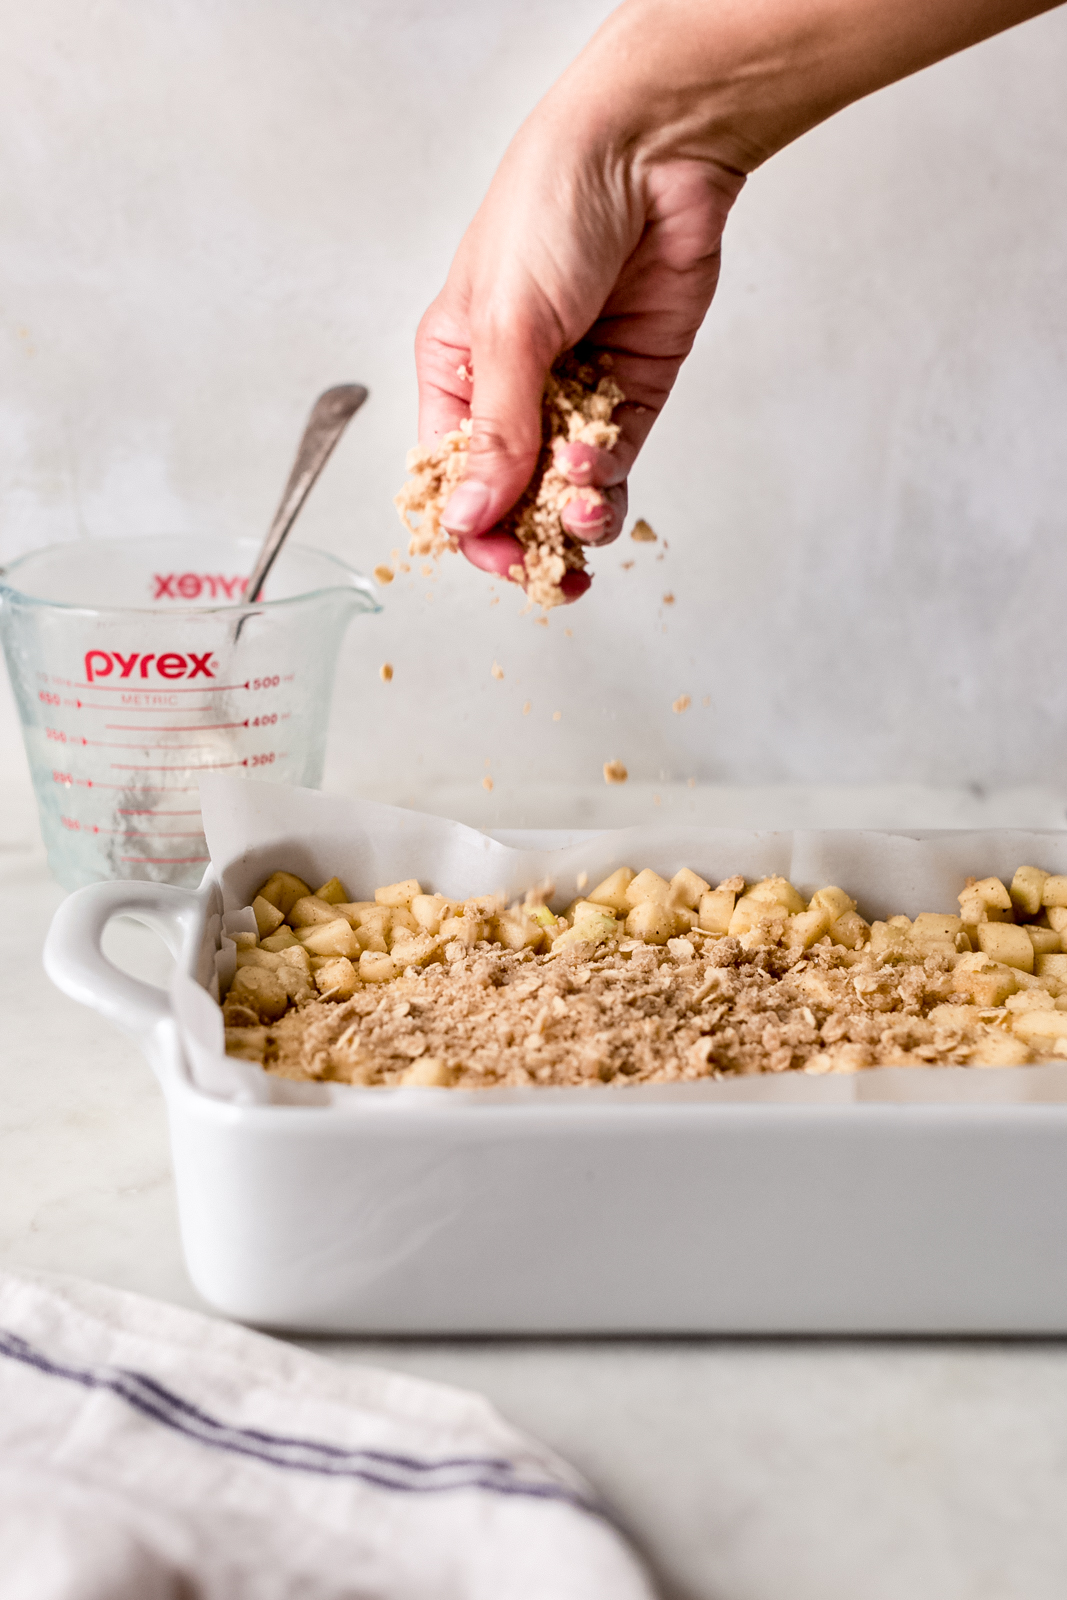 sprinkling crumble mixture over diced apples in white baking dish